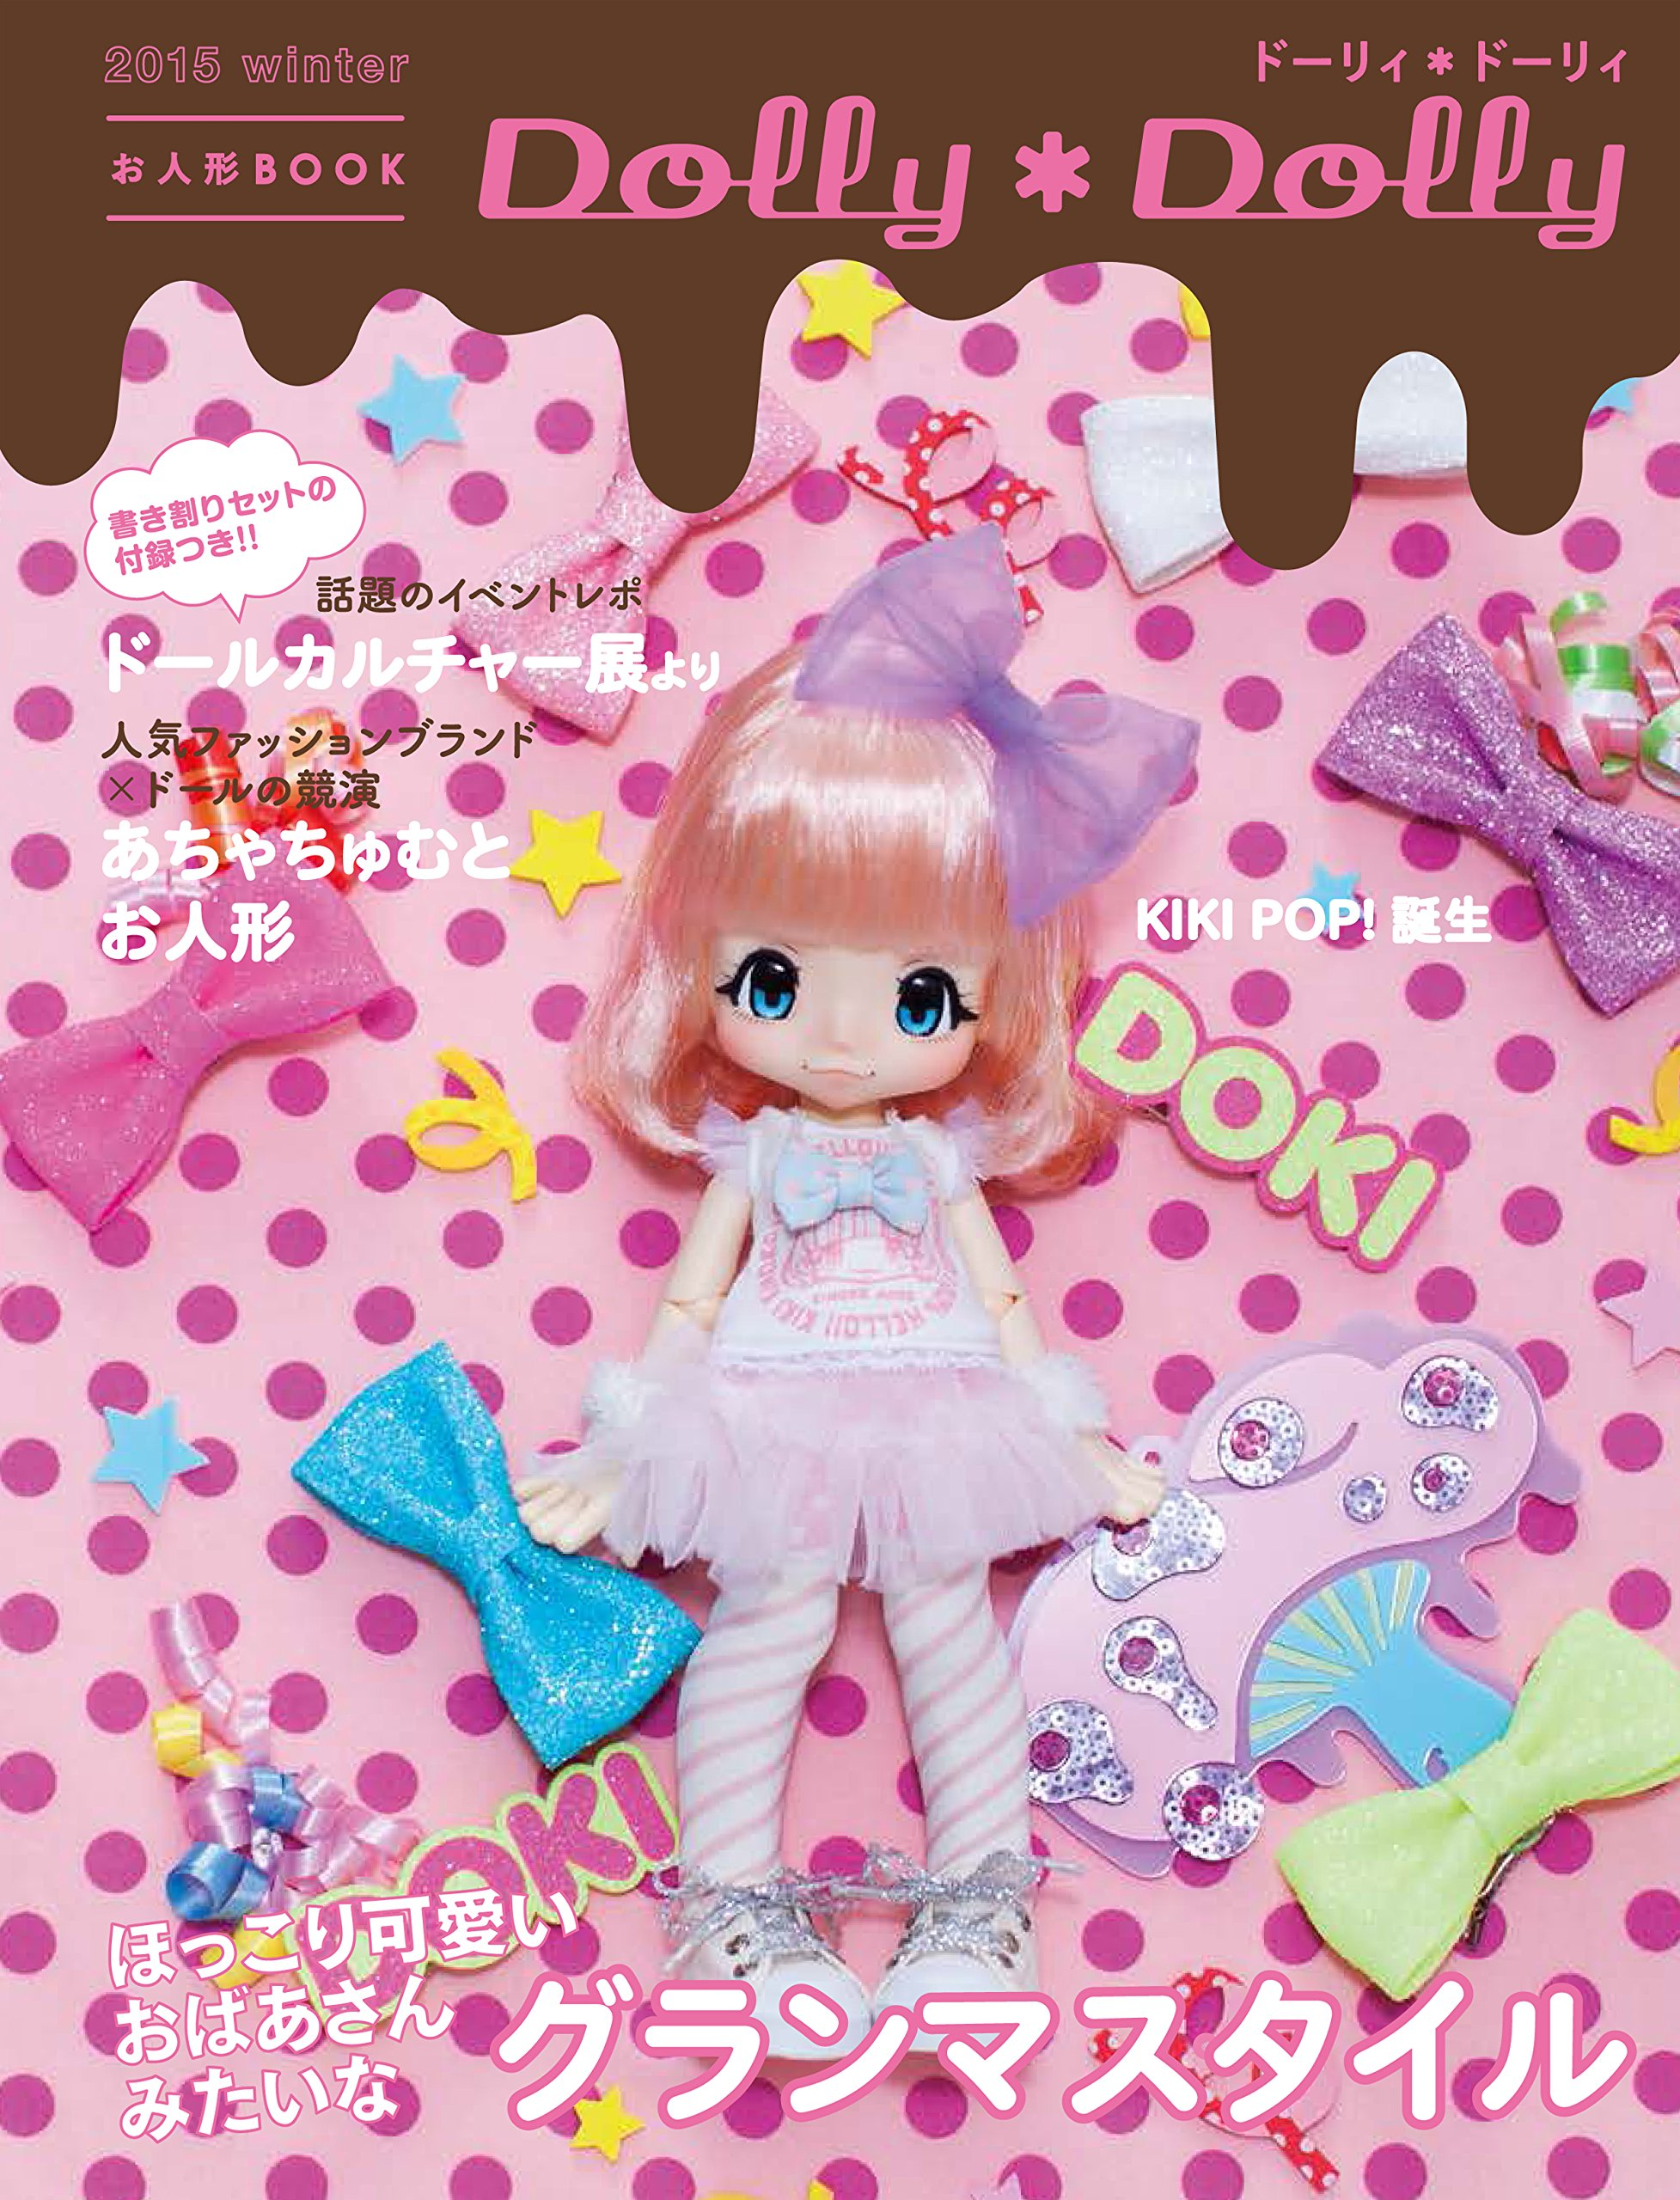 dolly dolly 2015winter お人形book dolly dolly編集部 本 通販